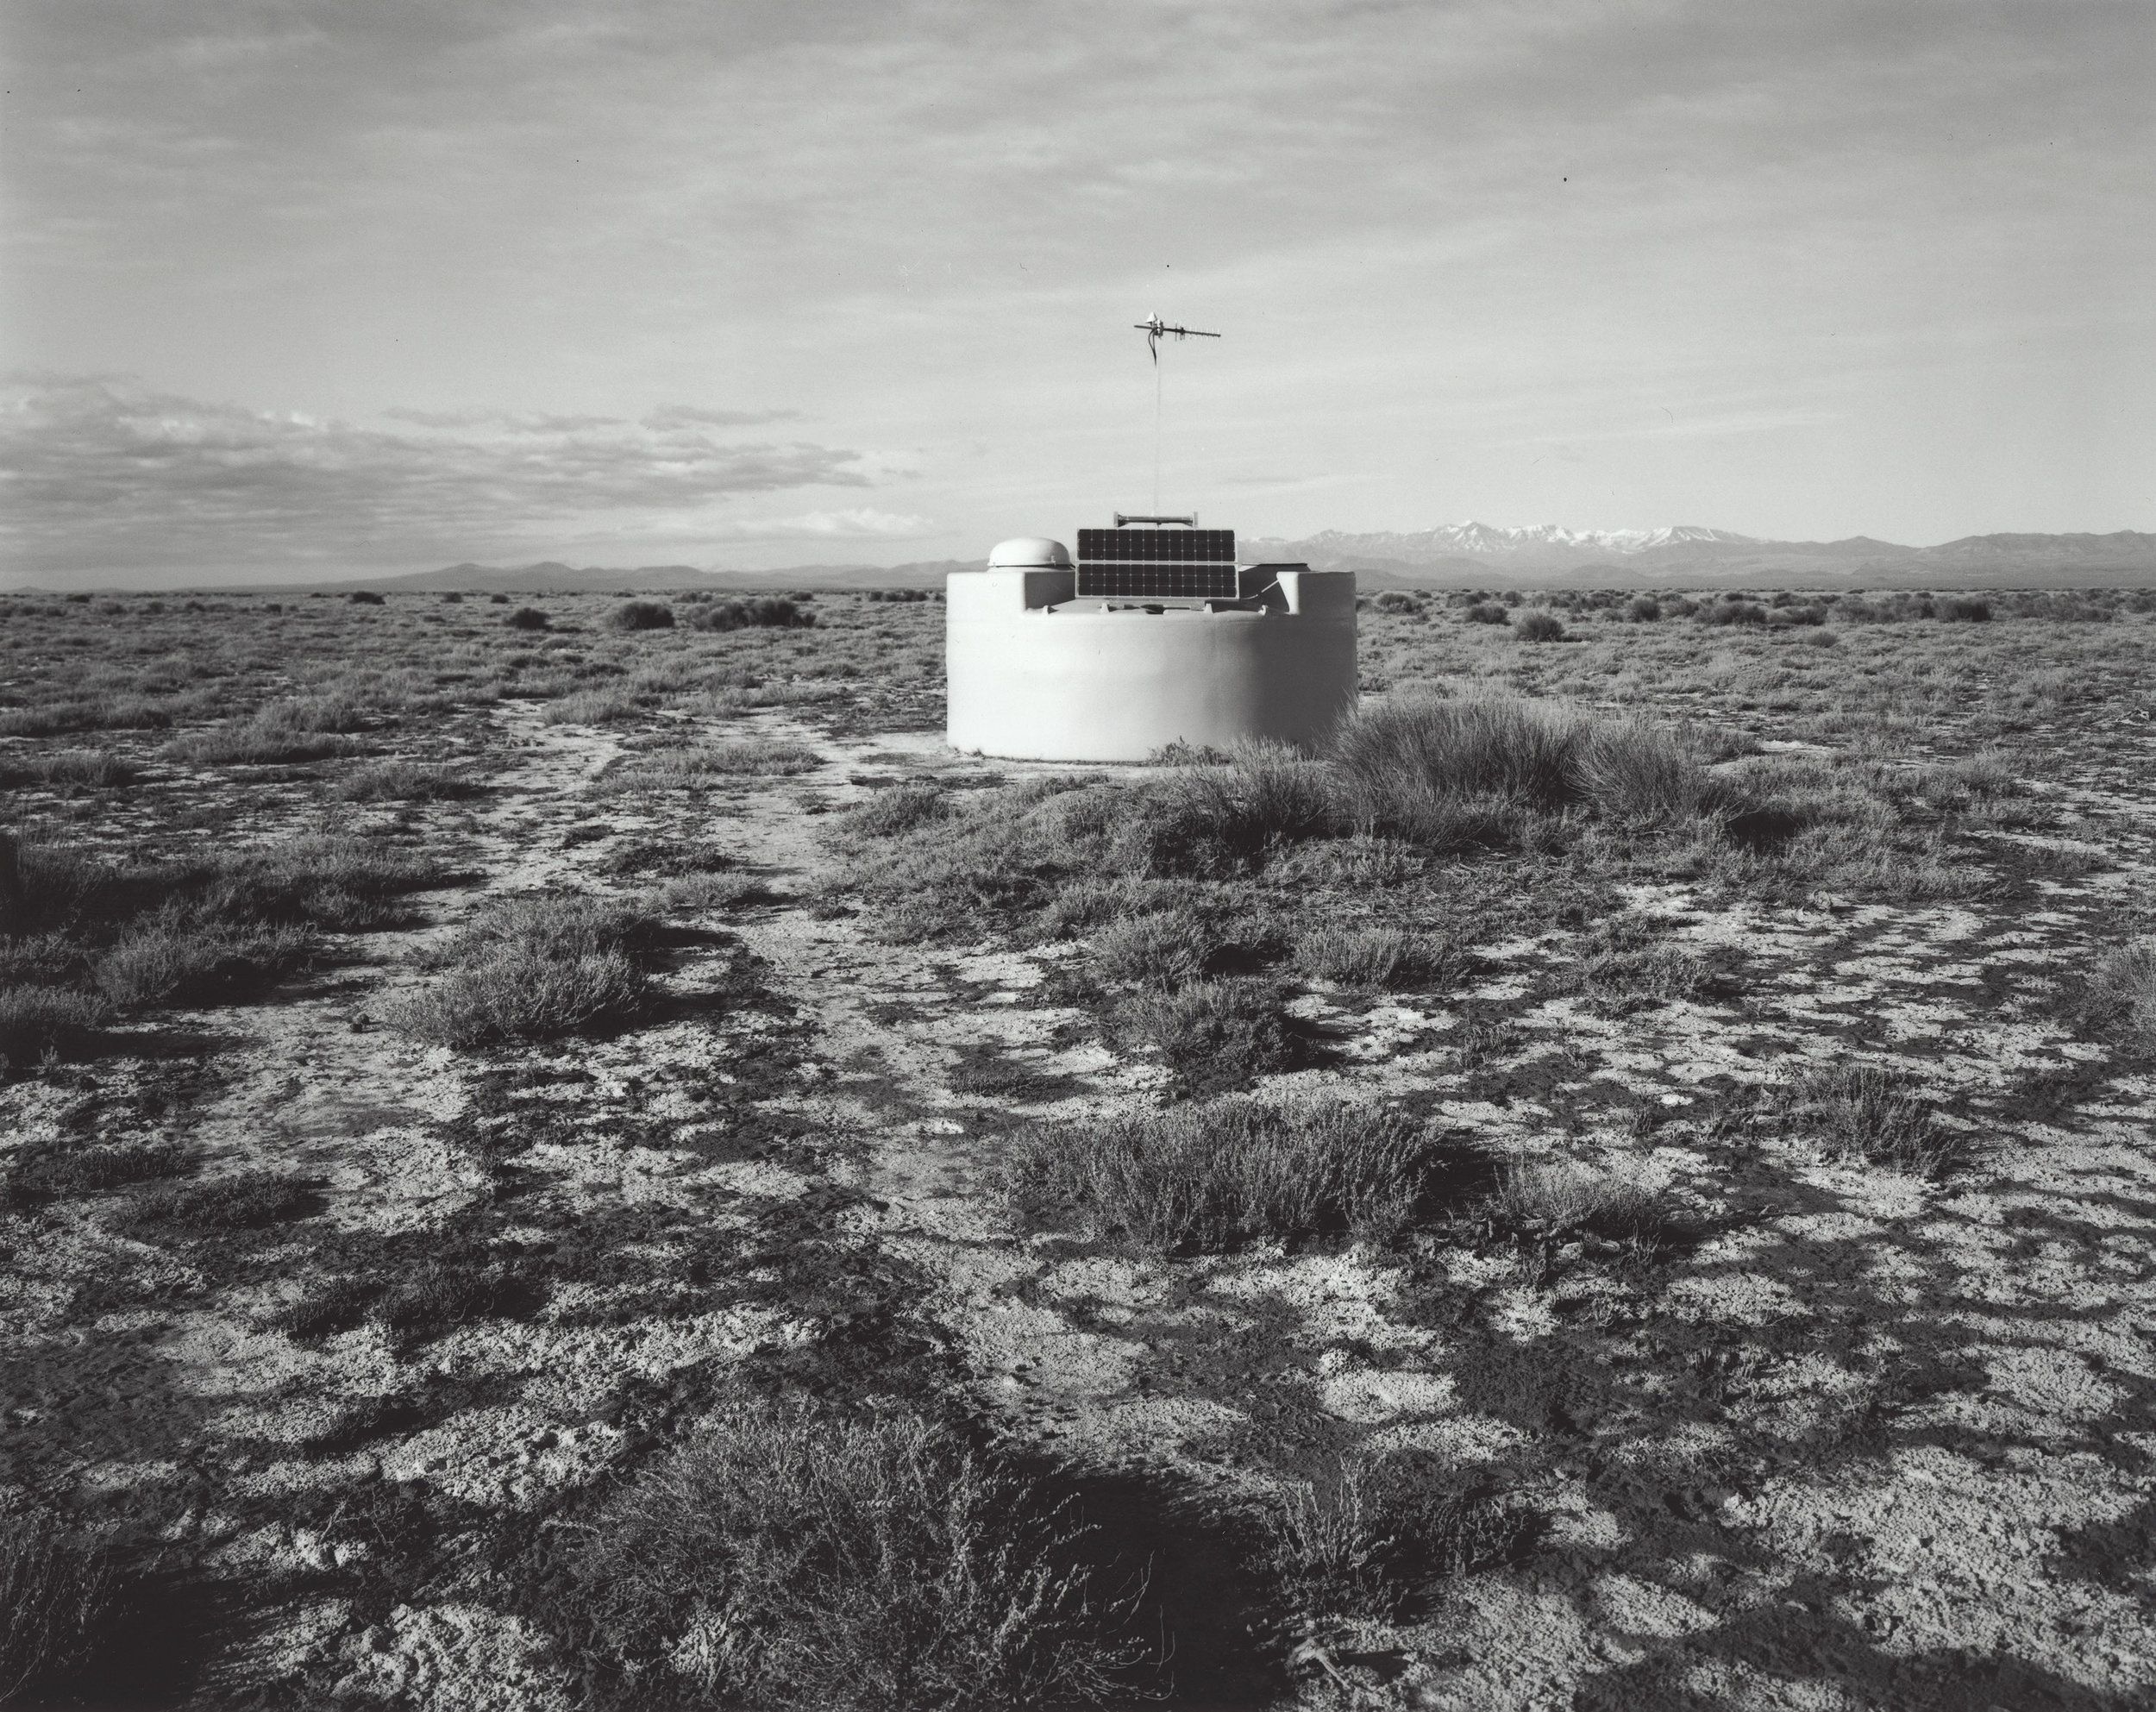 Detector, pierre Auger Cosmic Ray Observatory, Argentina, 2008